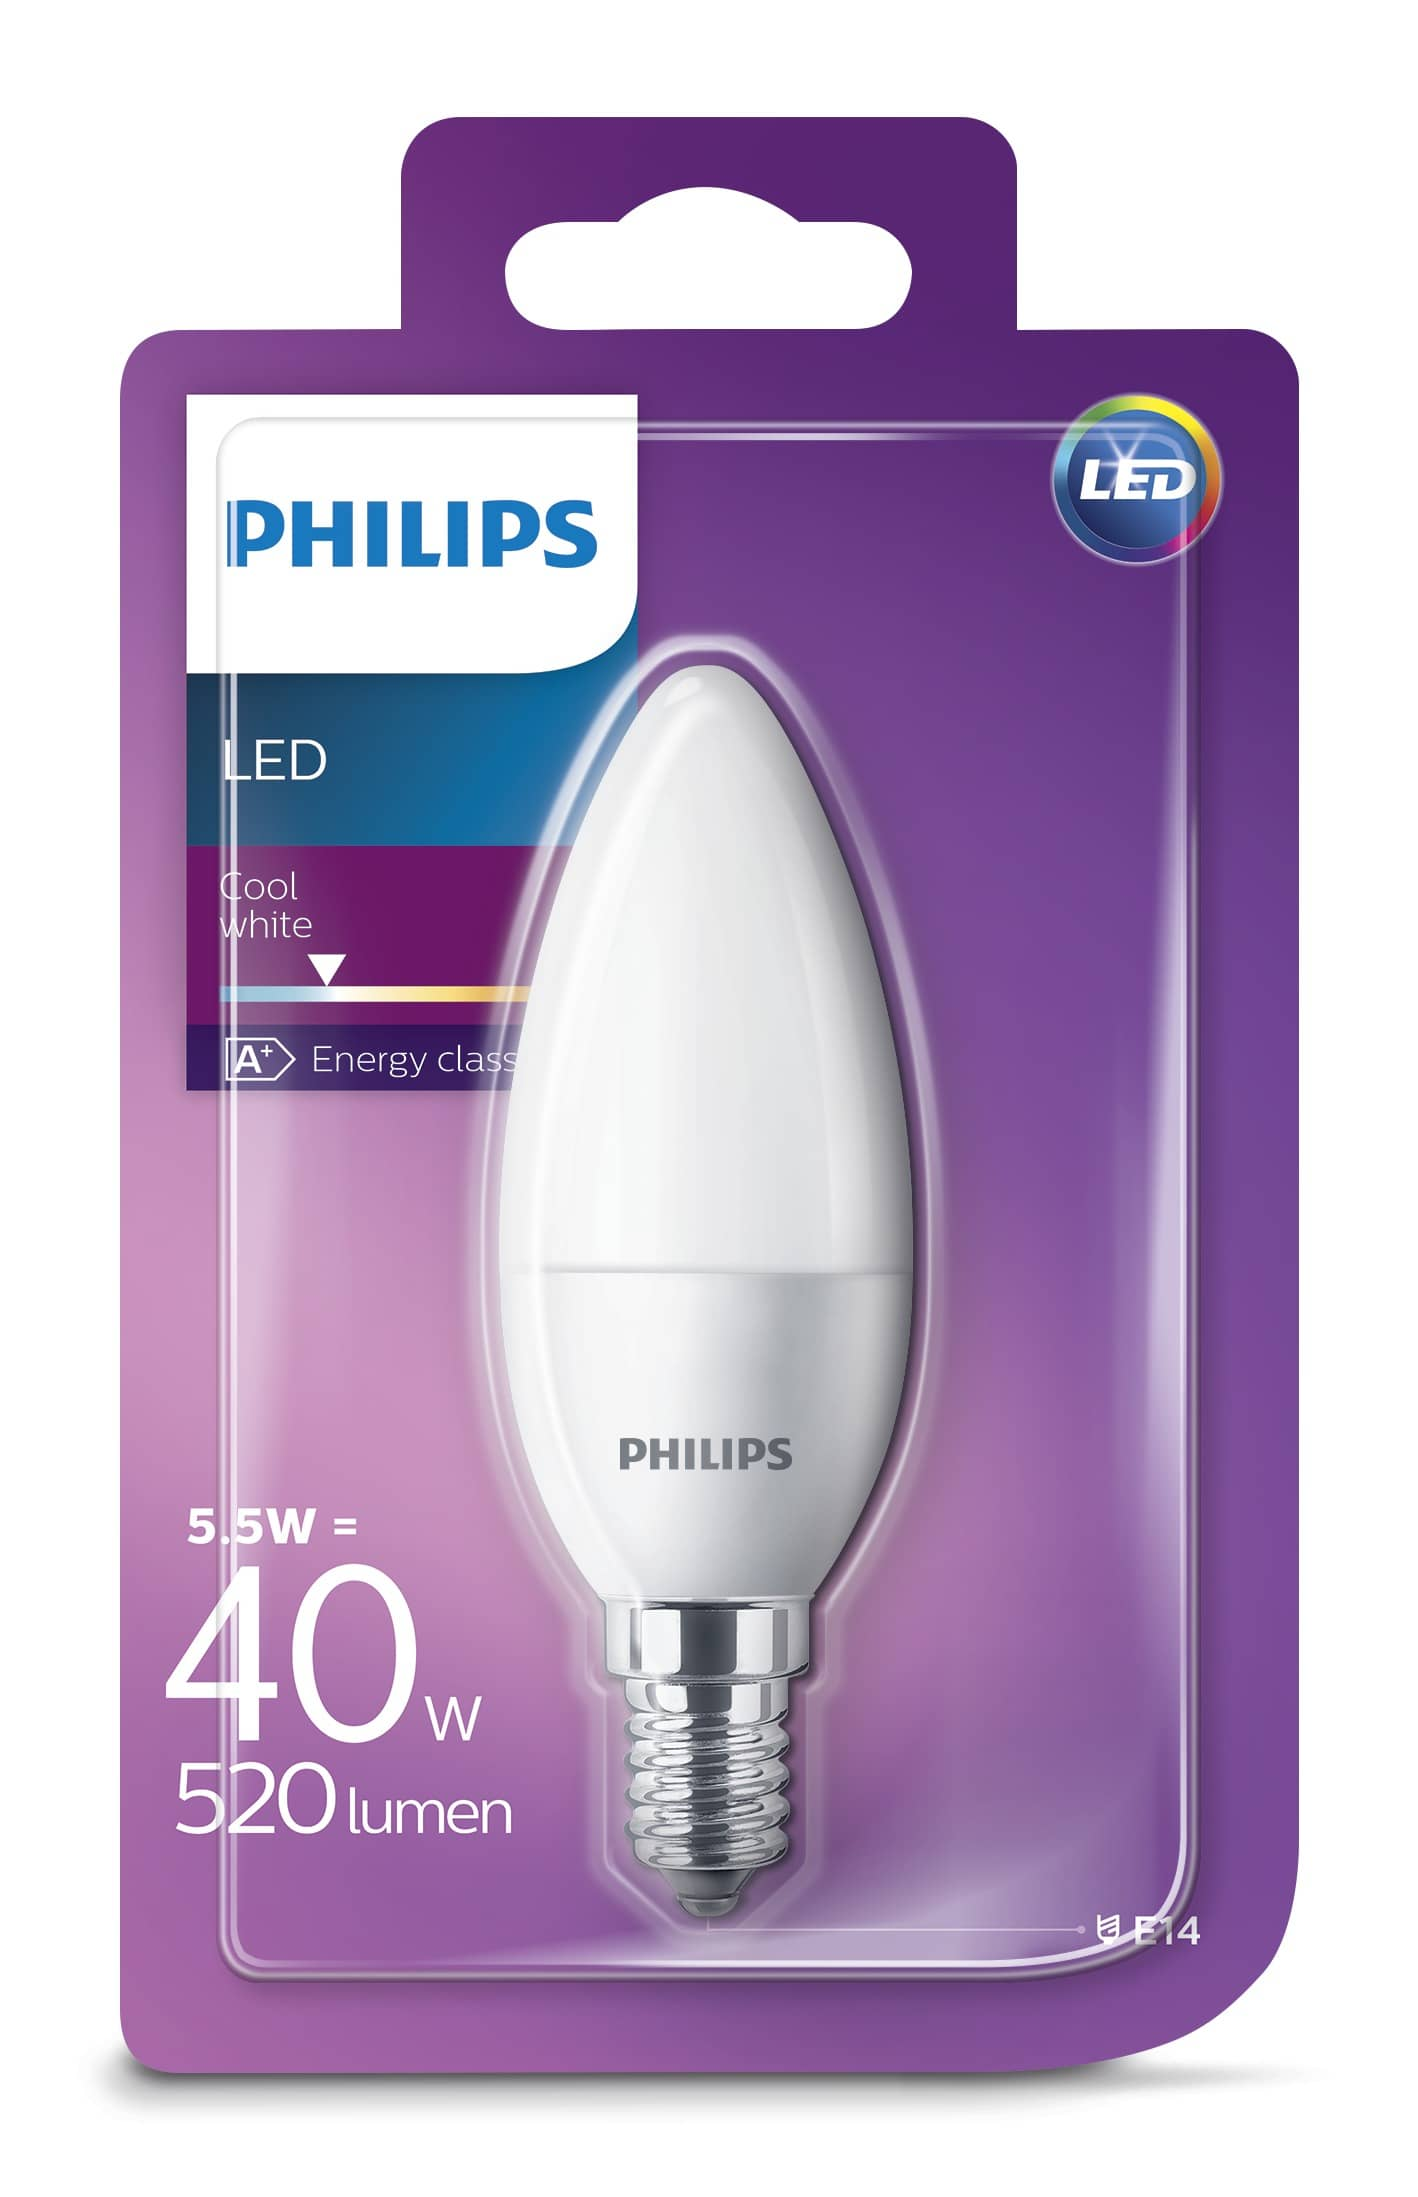 philips e14 led kerze 5 5w 520lm neutralweiss hier kaufen. Black Bedroom Furniture Sets. Home Design Ideas